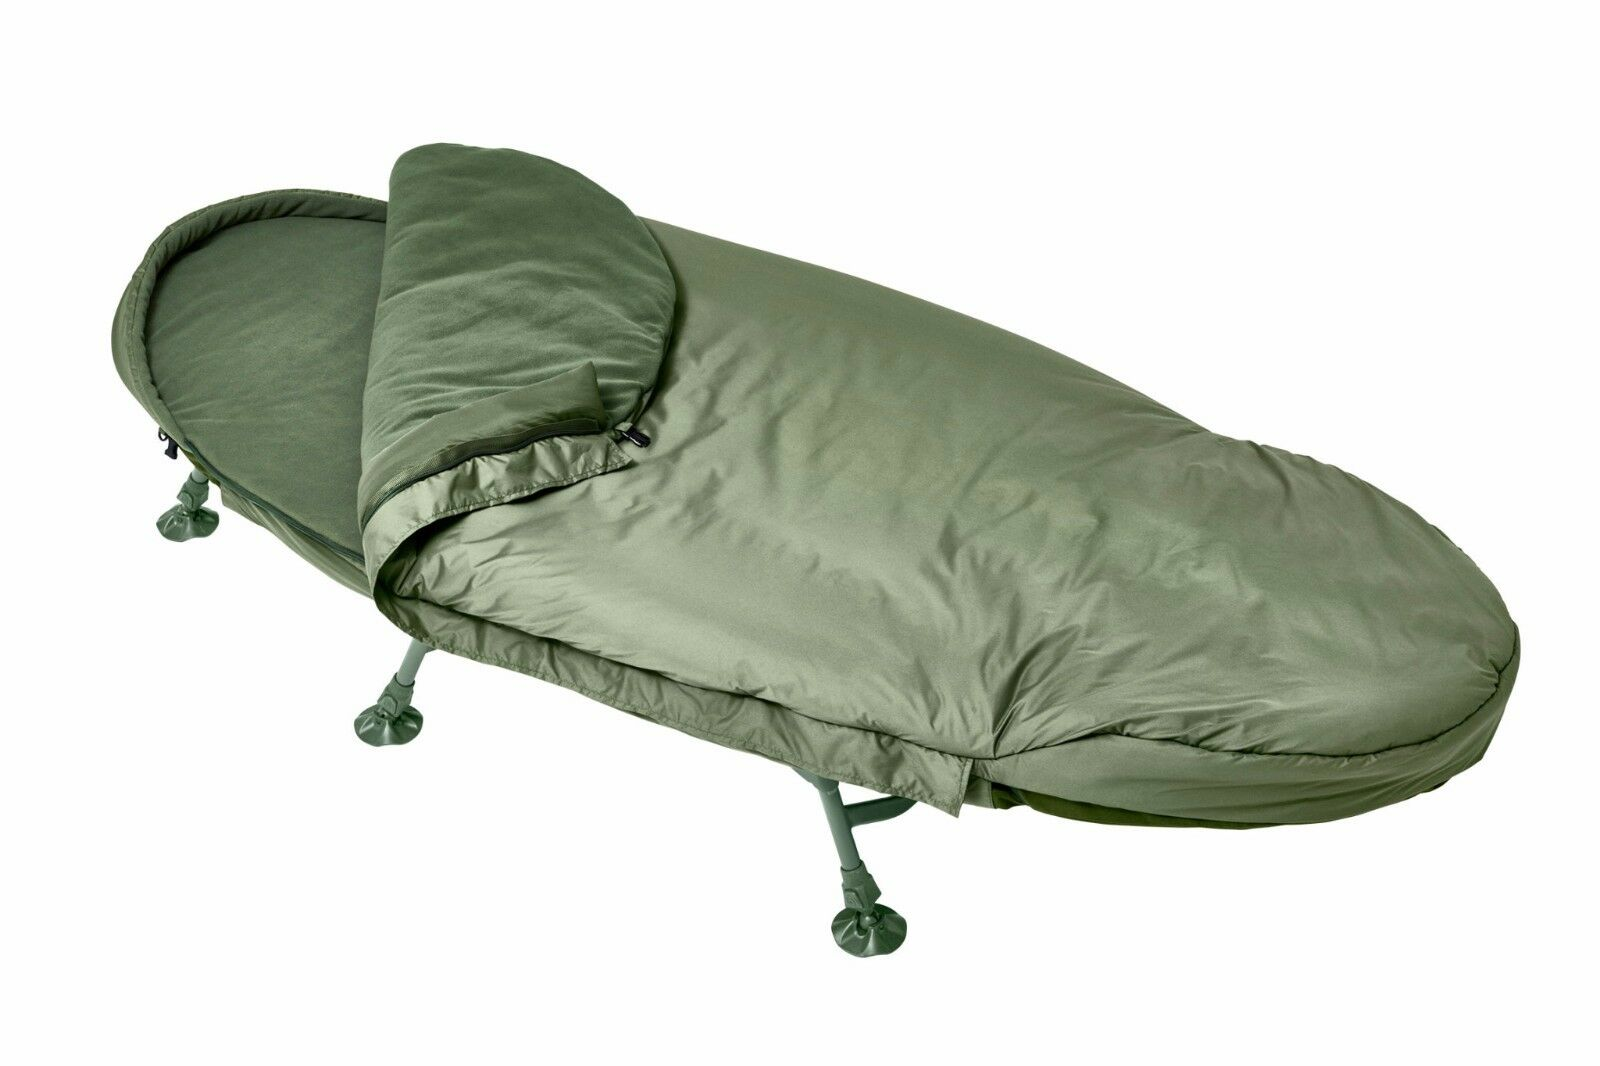 Trakker Levelite Oval Bed 5 Season Sleeping sac SALE - 208205